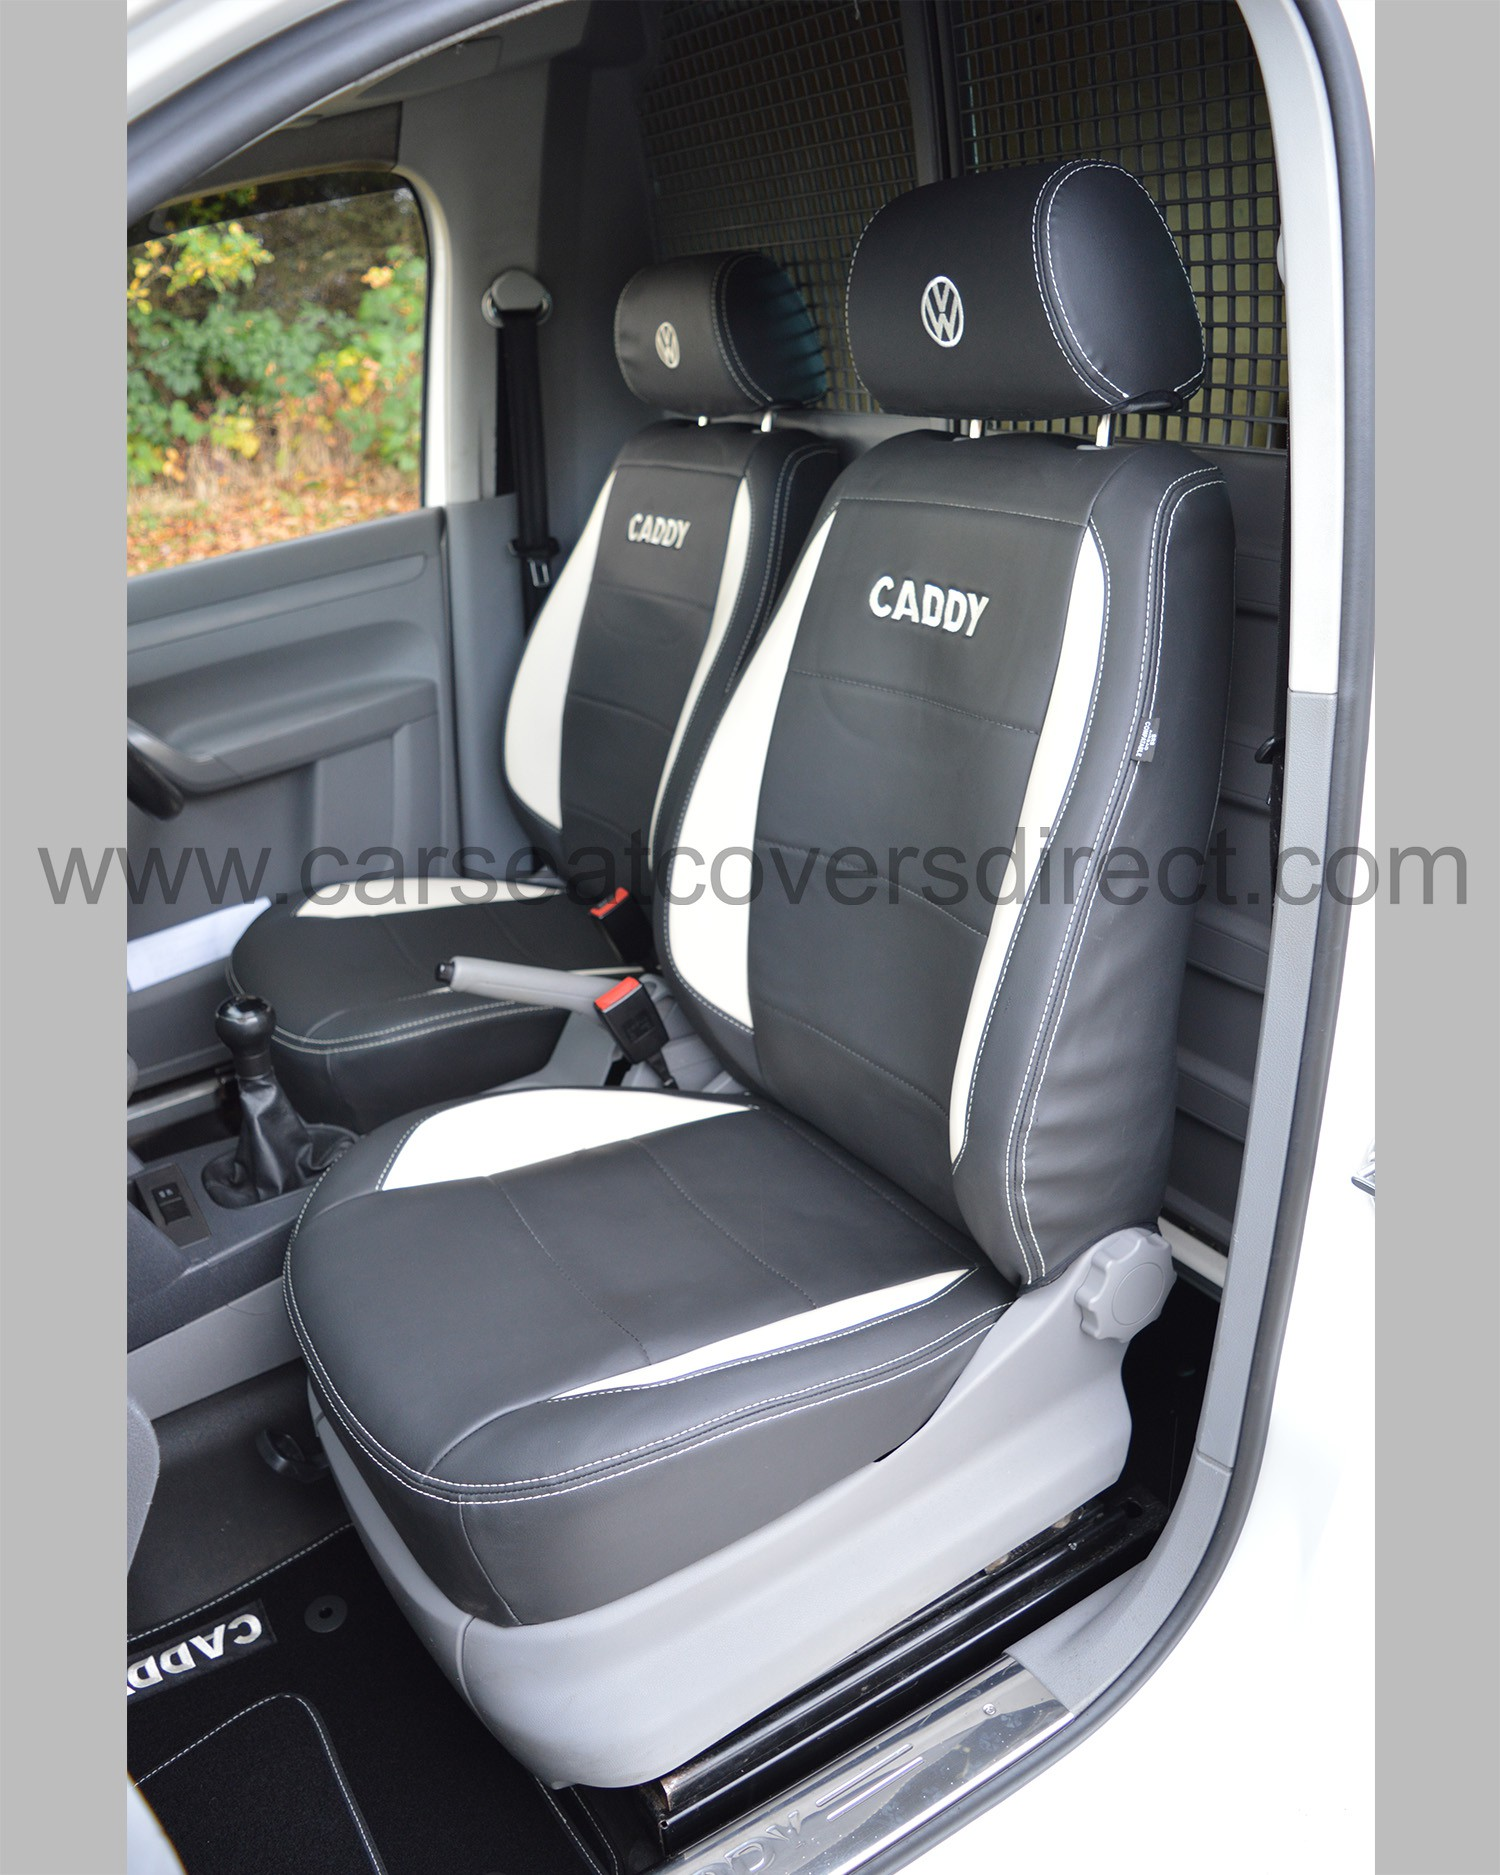 Volkswagen VW Caddy Seat Covers - Passenger Seat